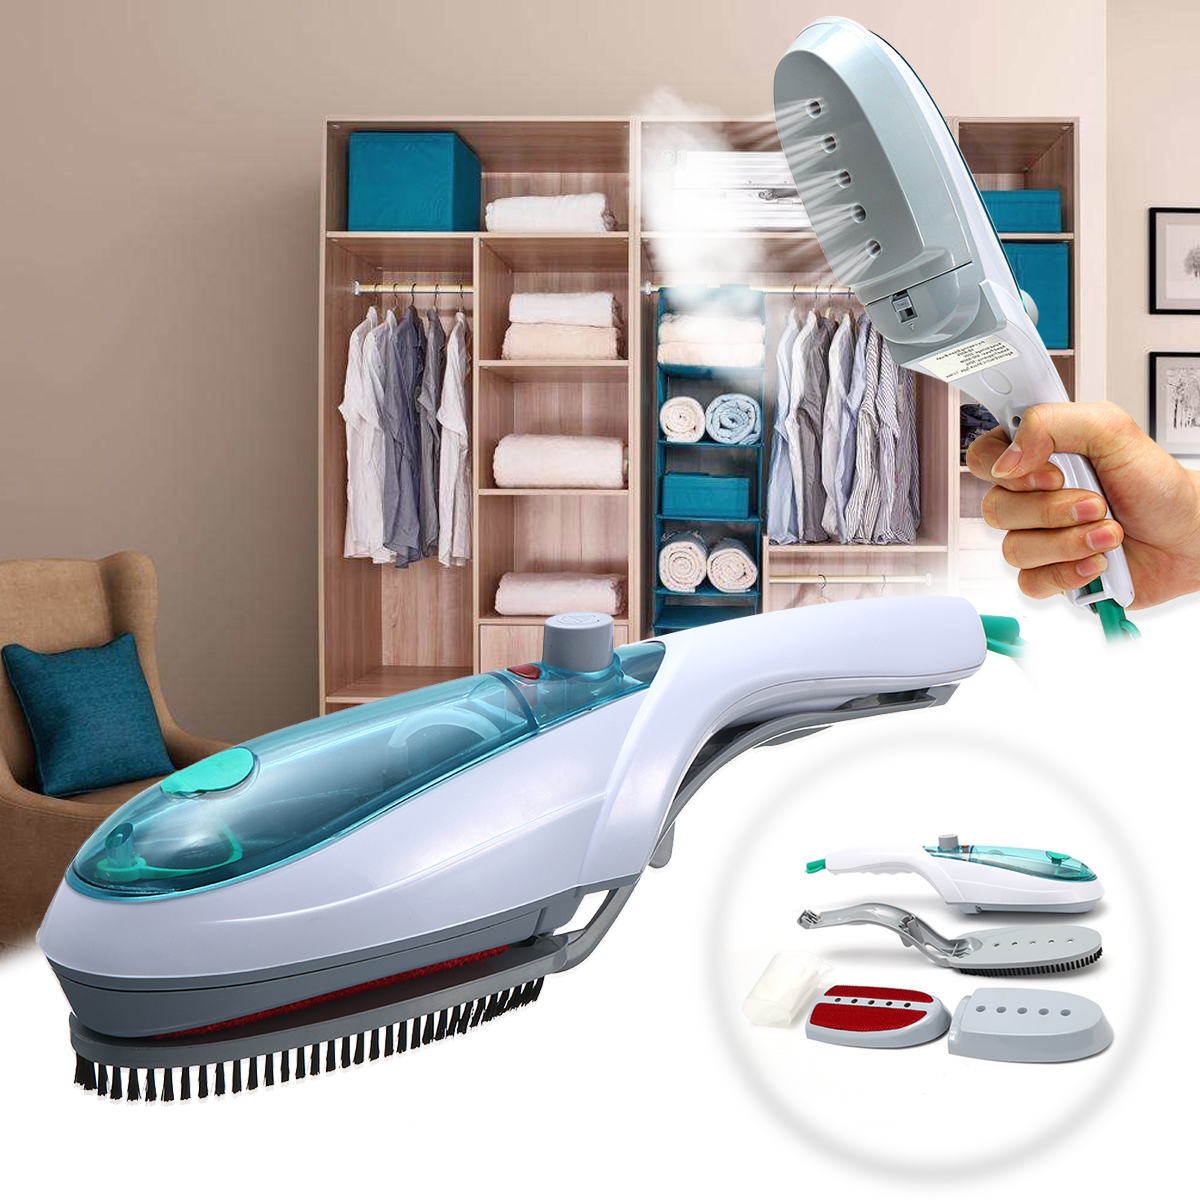 Multifunction Portable Garment Steamer Handheld Electric Steam Iron Kit For Home Travelling Fabric Clothes Cleaning Brush